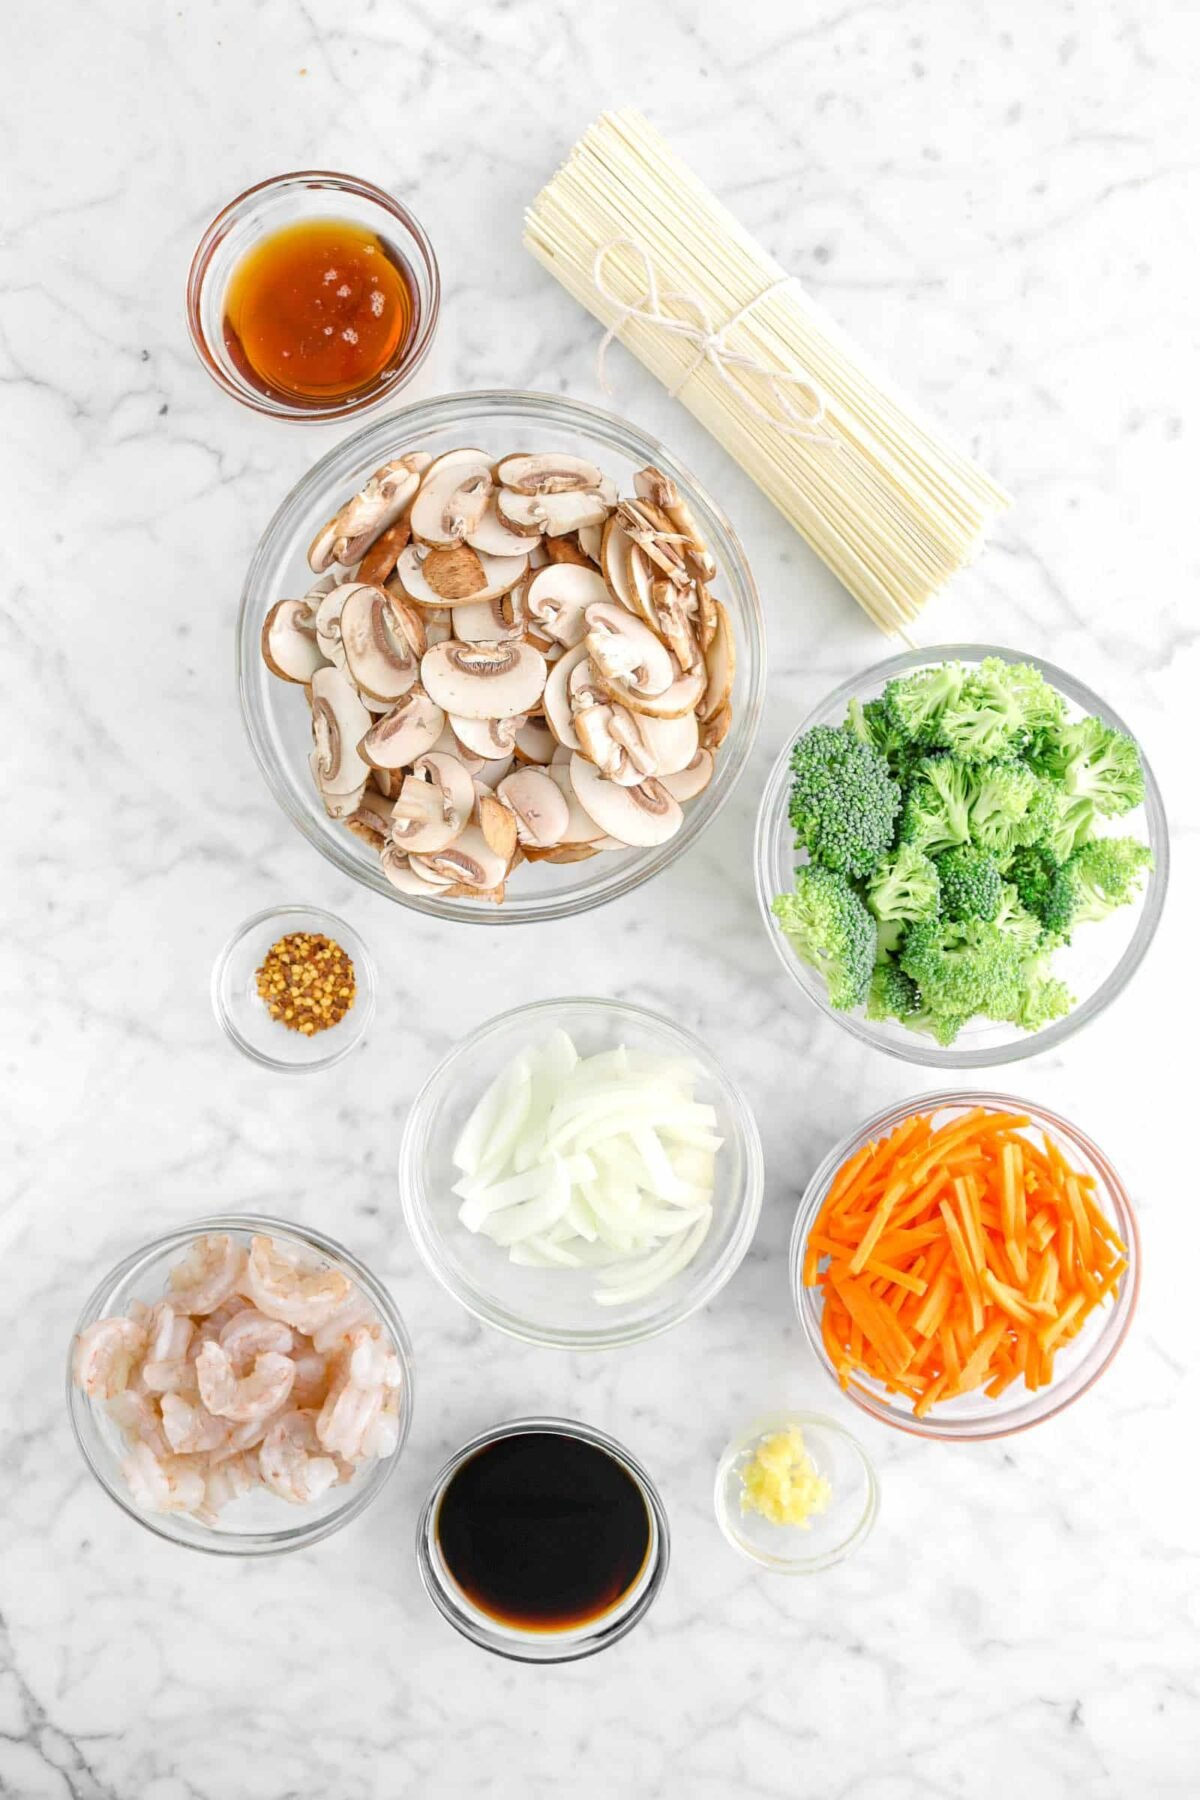 sesame oil, lo mein noodles, mushrooms, broccoli, red pepper flakes, onion, carrots, garlic, soy sauce, and shrimp on marble counter